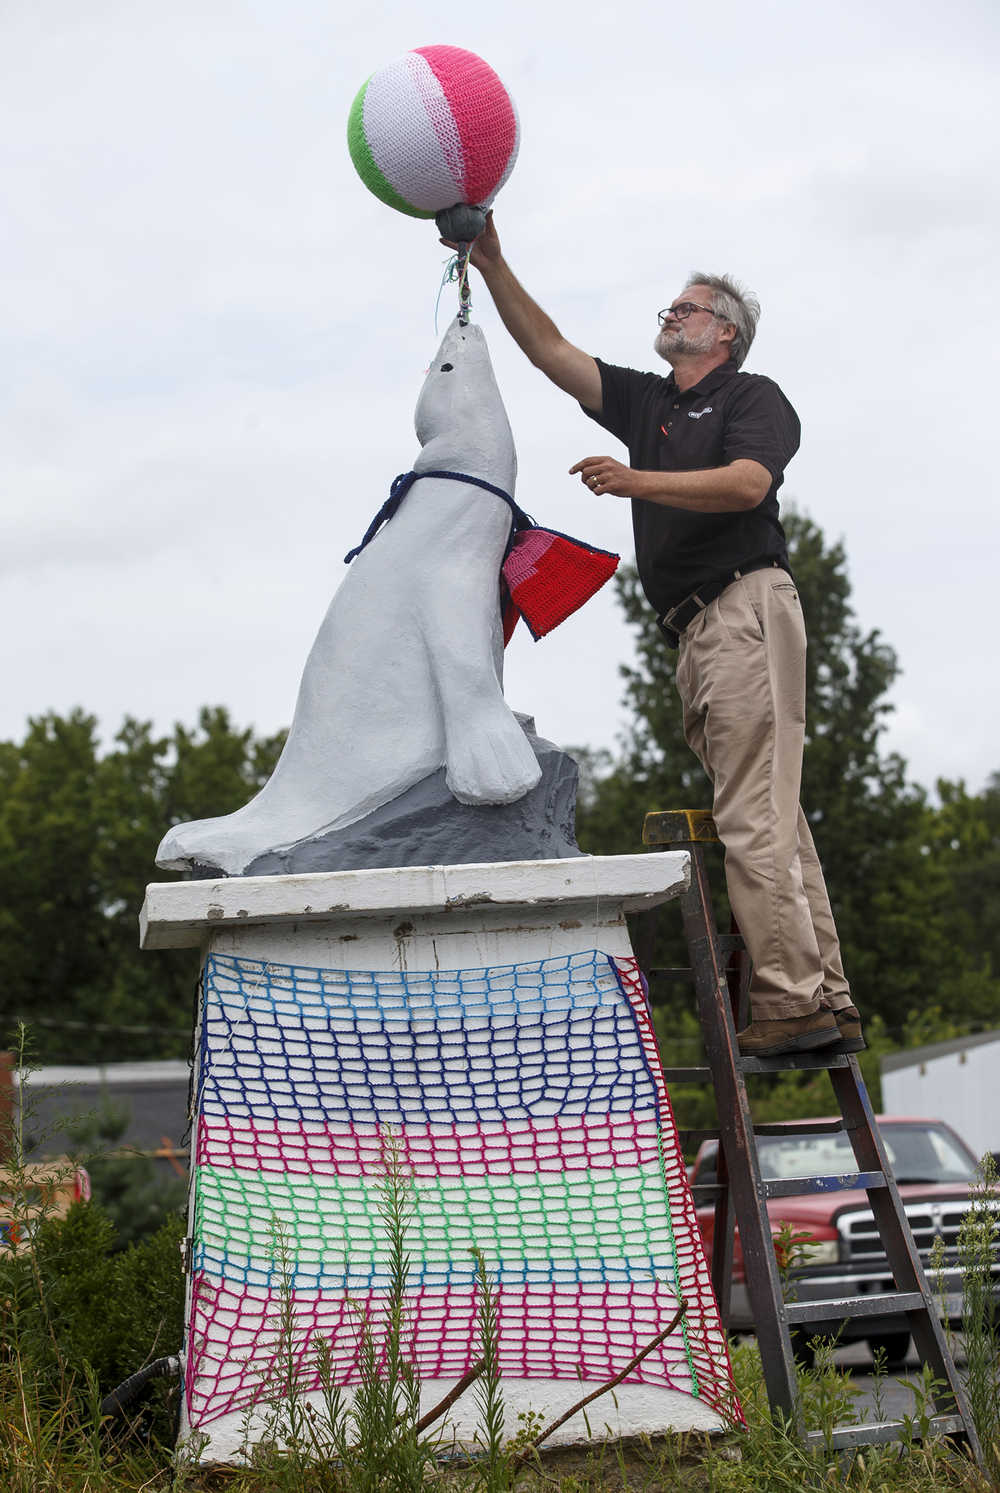 Ace Sign Co. president Dennis Bringuet repositions a beach ball with a knitted cover on top of the Bel-Aire Motel seal on the company's property Wednesday, Aug. 5, 2015. The company moved the 8,000-pound concrete seal after mayor Jim Langfelder purchased it and after a group of knitters decorated it in yarn. Ted Schurter/The State Journal-Register